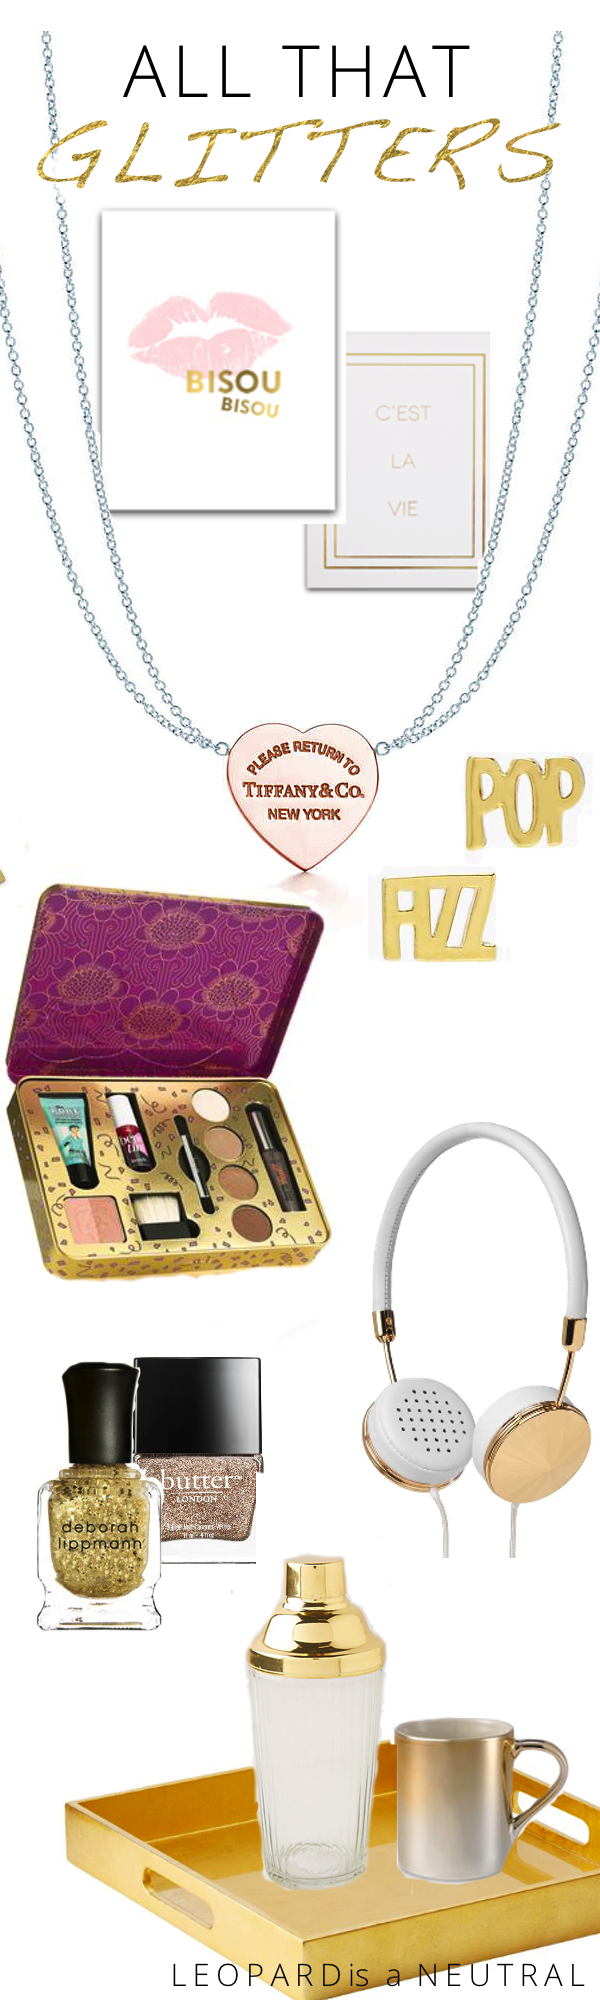 All that Glitters gift guide Holiday 2013